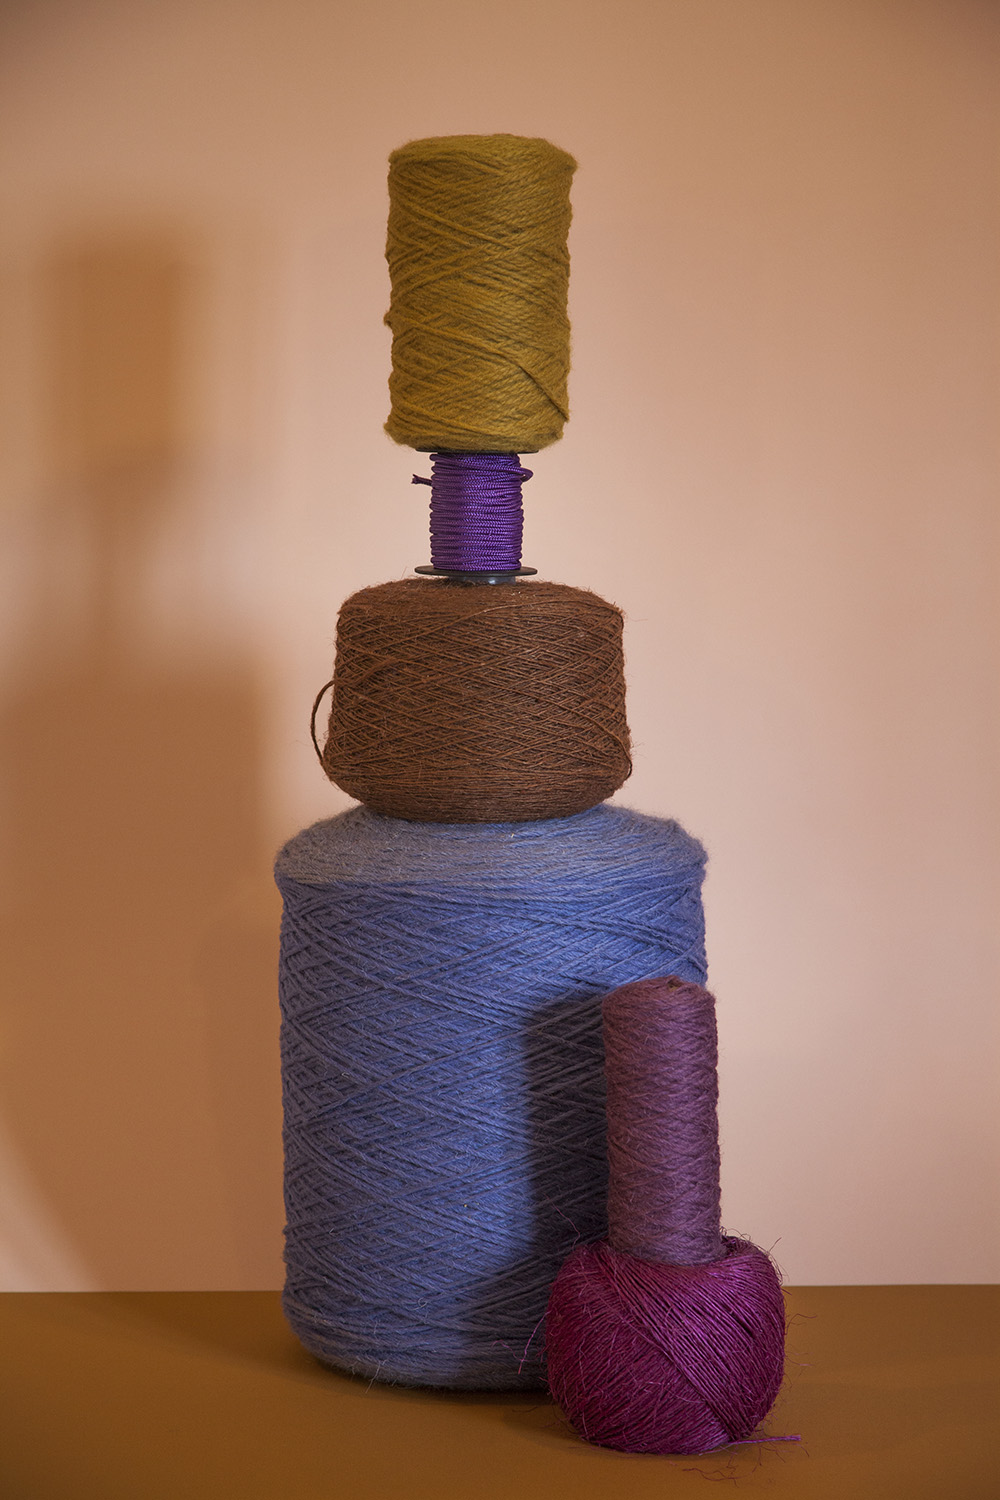 Compose - Is a continuous research in weaving.More soon.